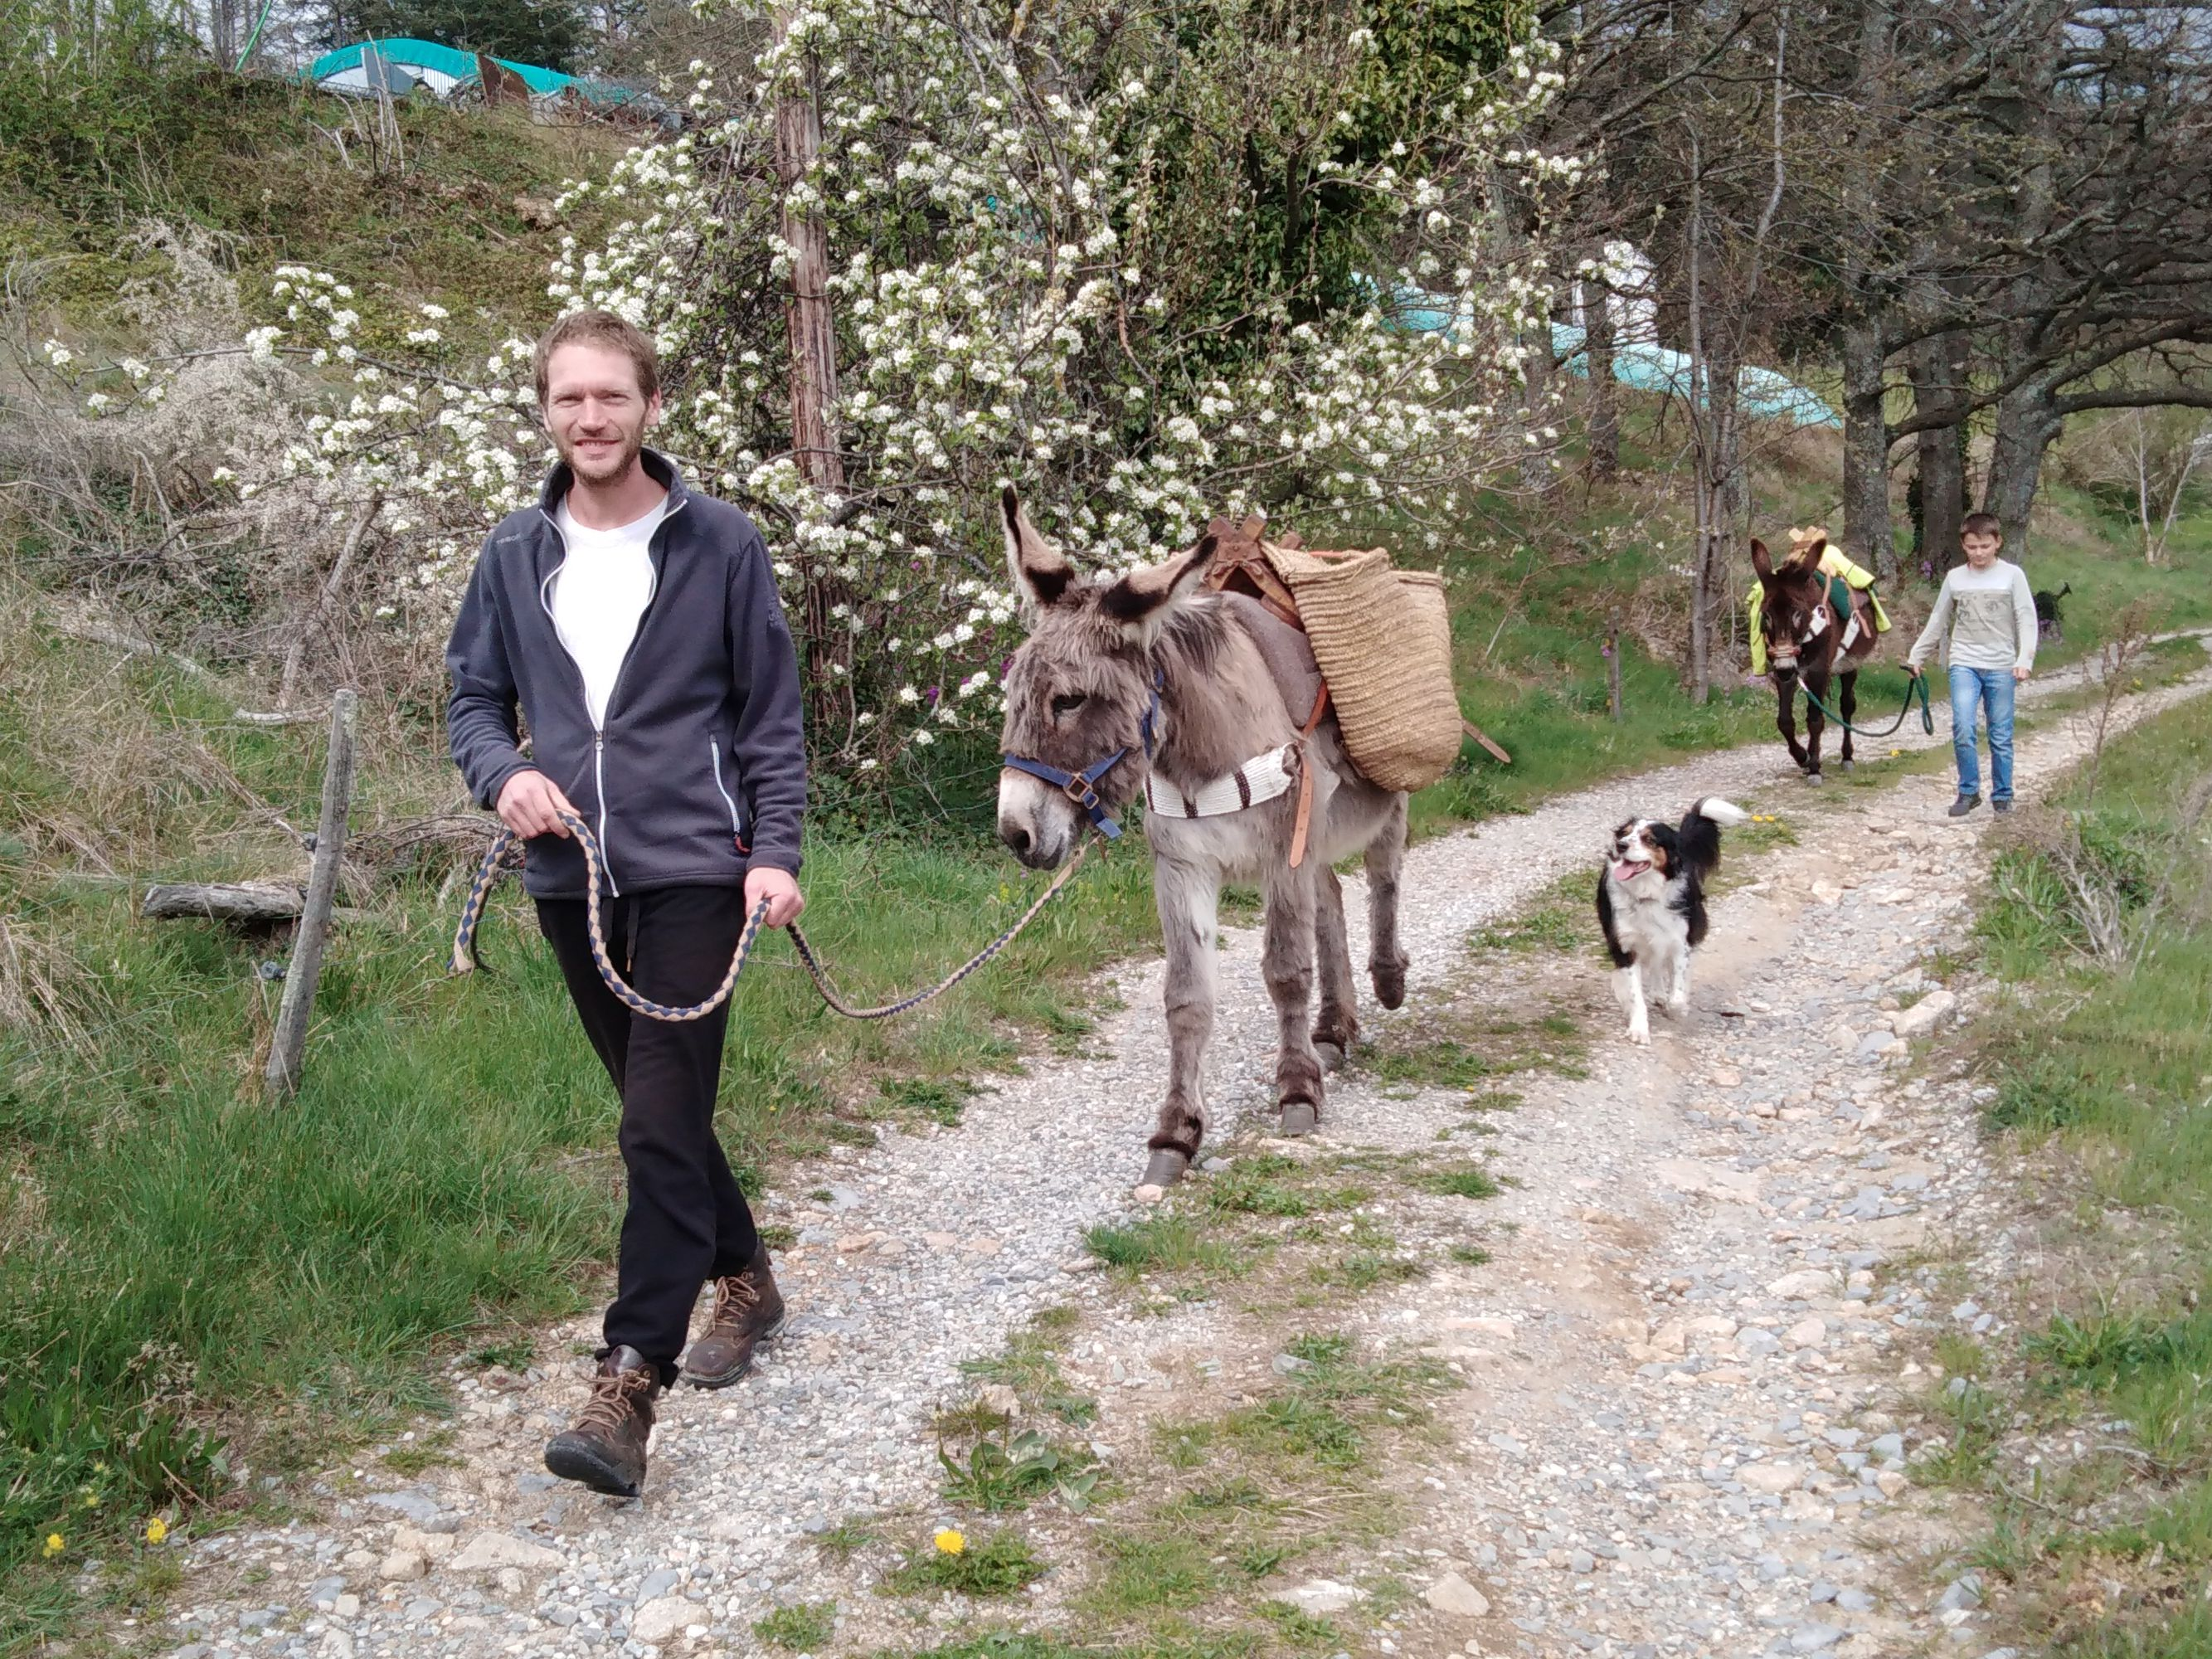 Sports : Ânes sans frontières - hikes with donkeys